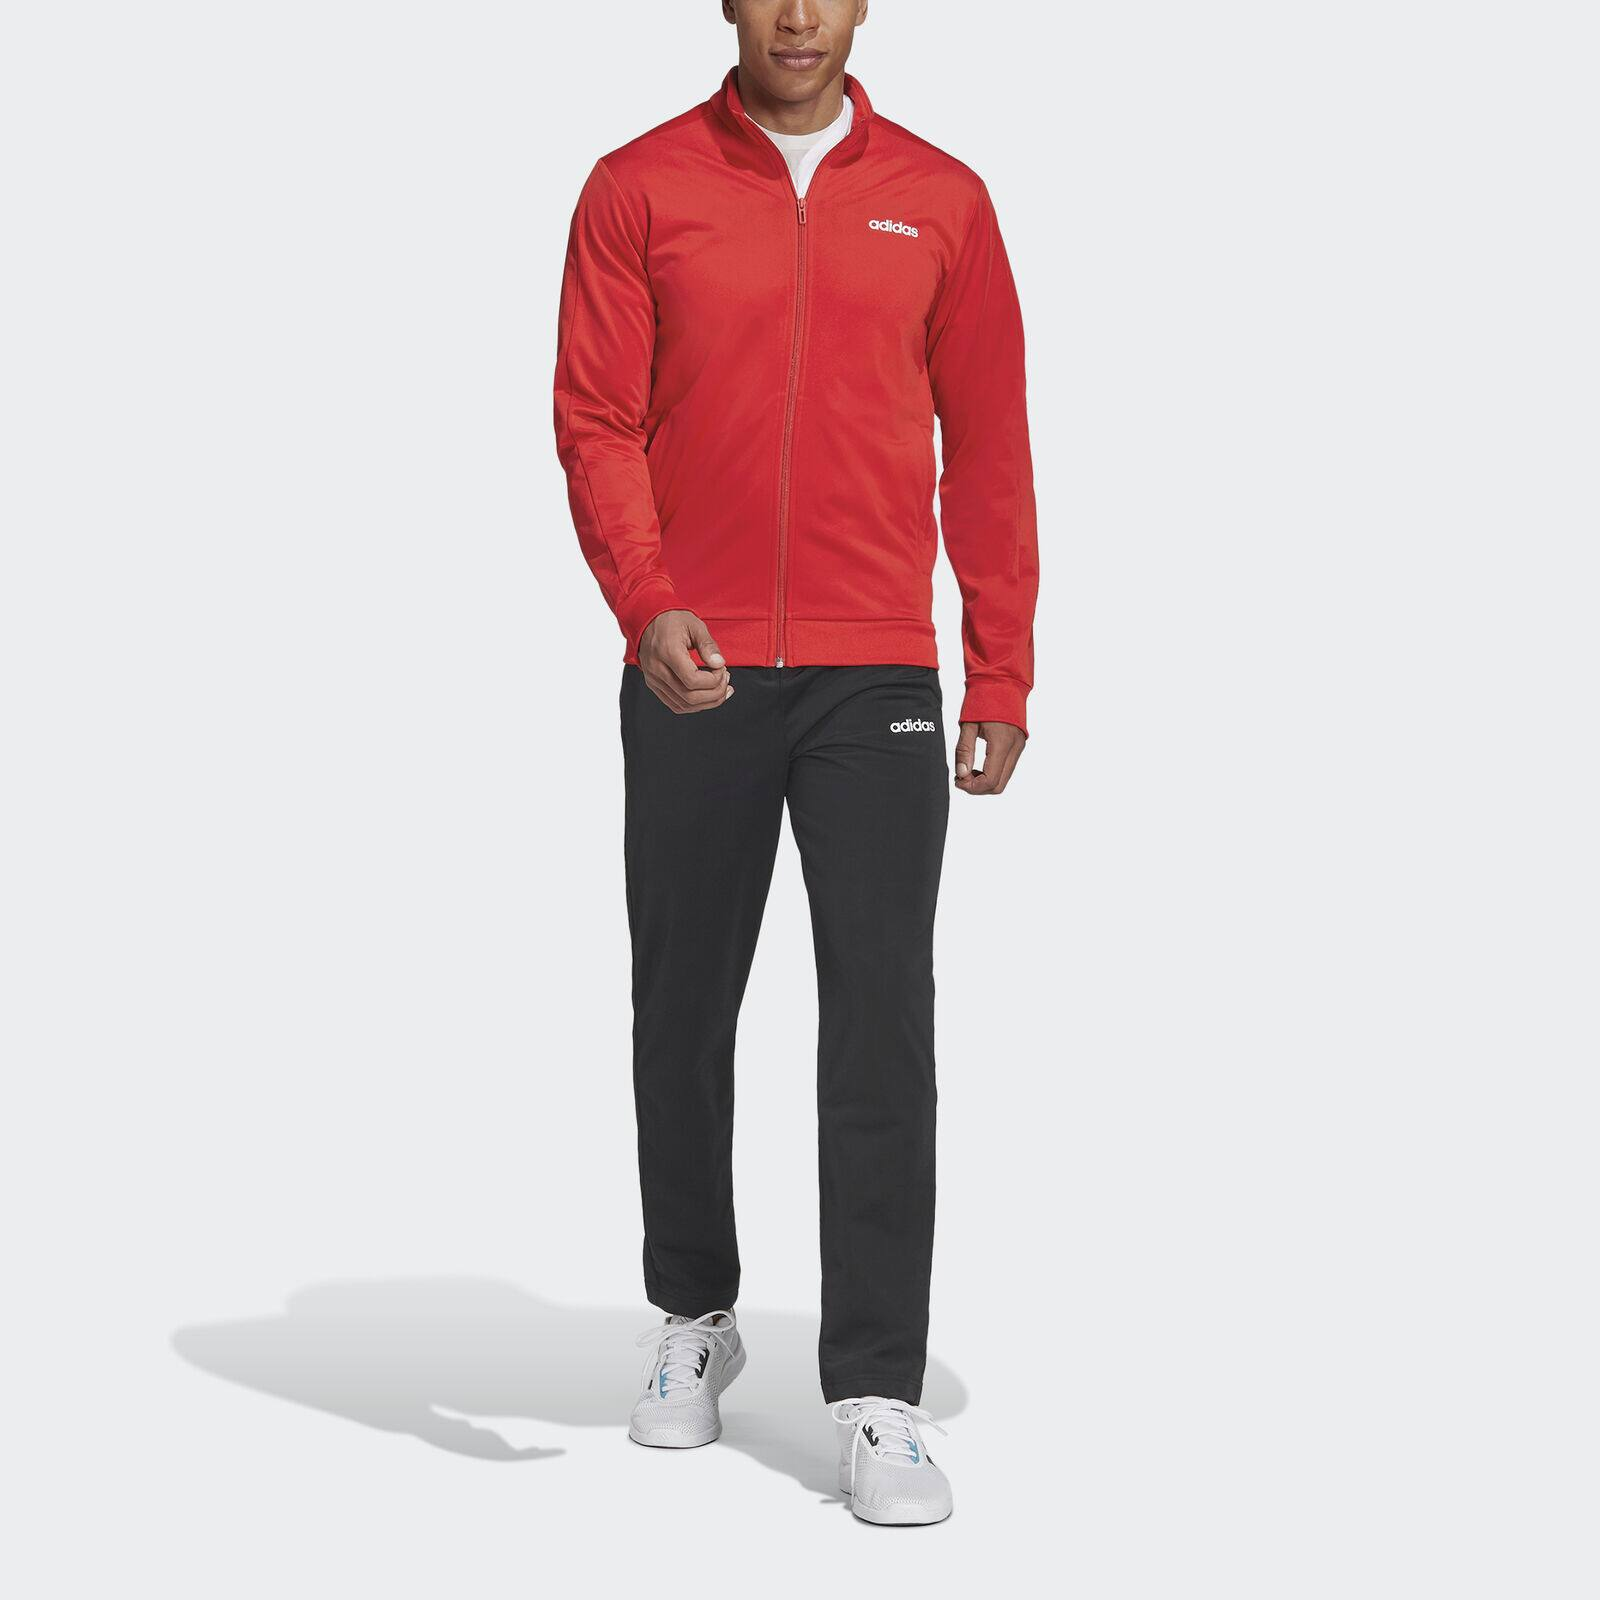 adidas Men's Essentials Basics Track Suit (Jacket and Pants, scarlet/black)